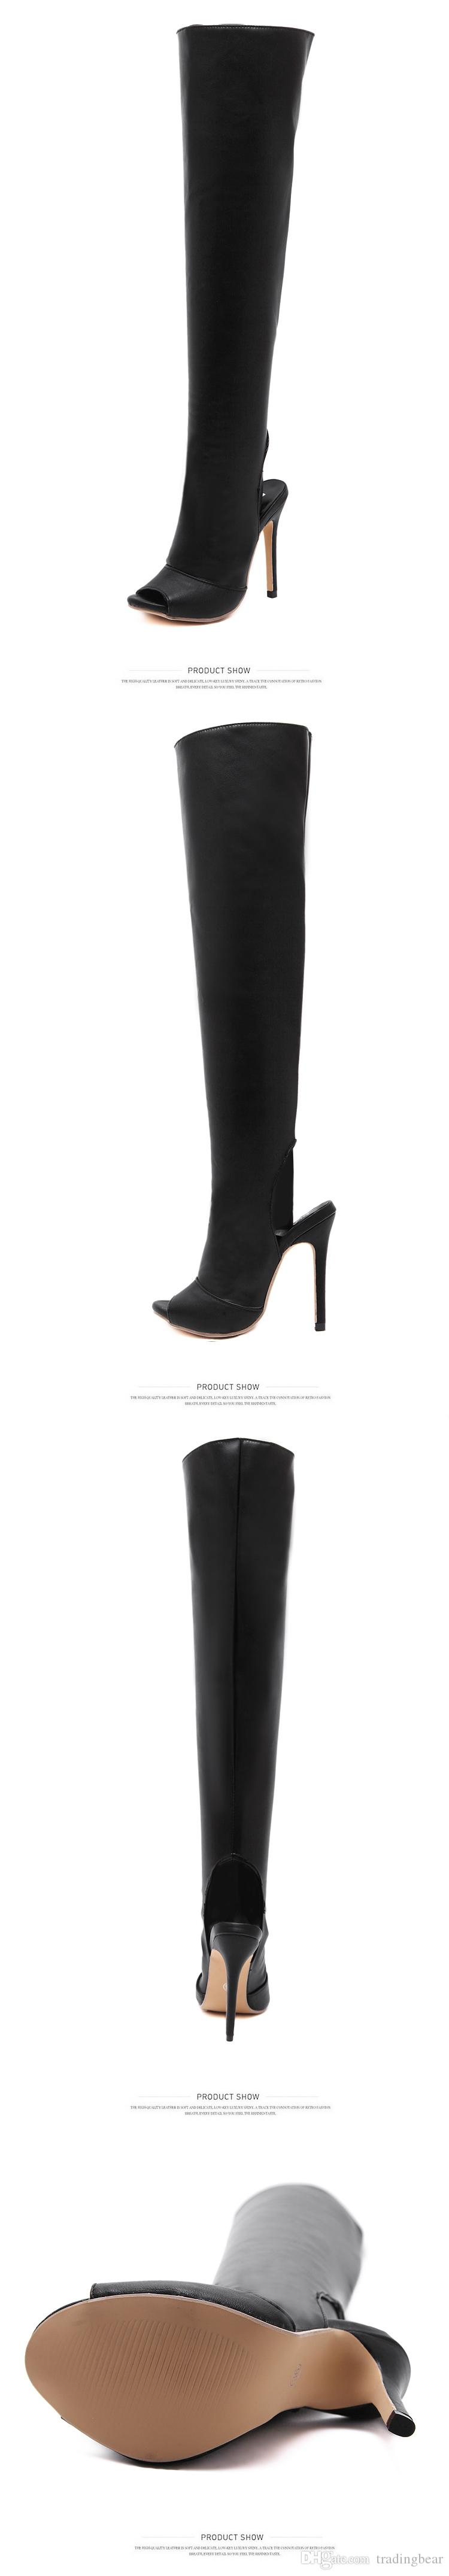 Milan fashion bare heel peep toe slim fit soft leather over the knee thigh high boots Size 35 to 40